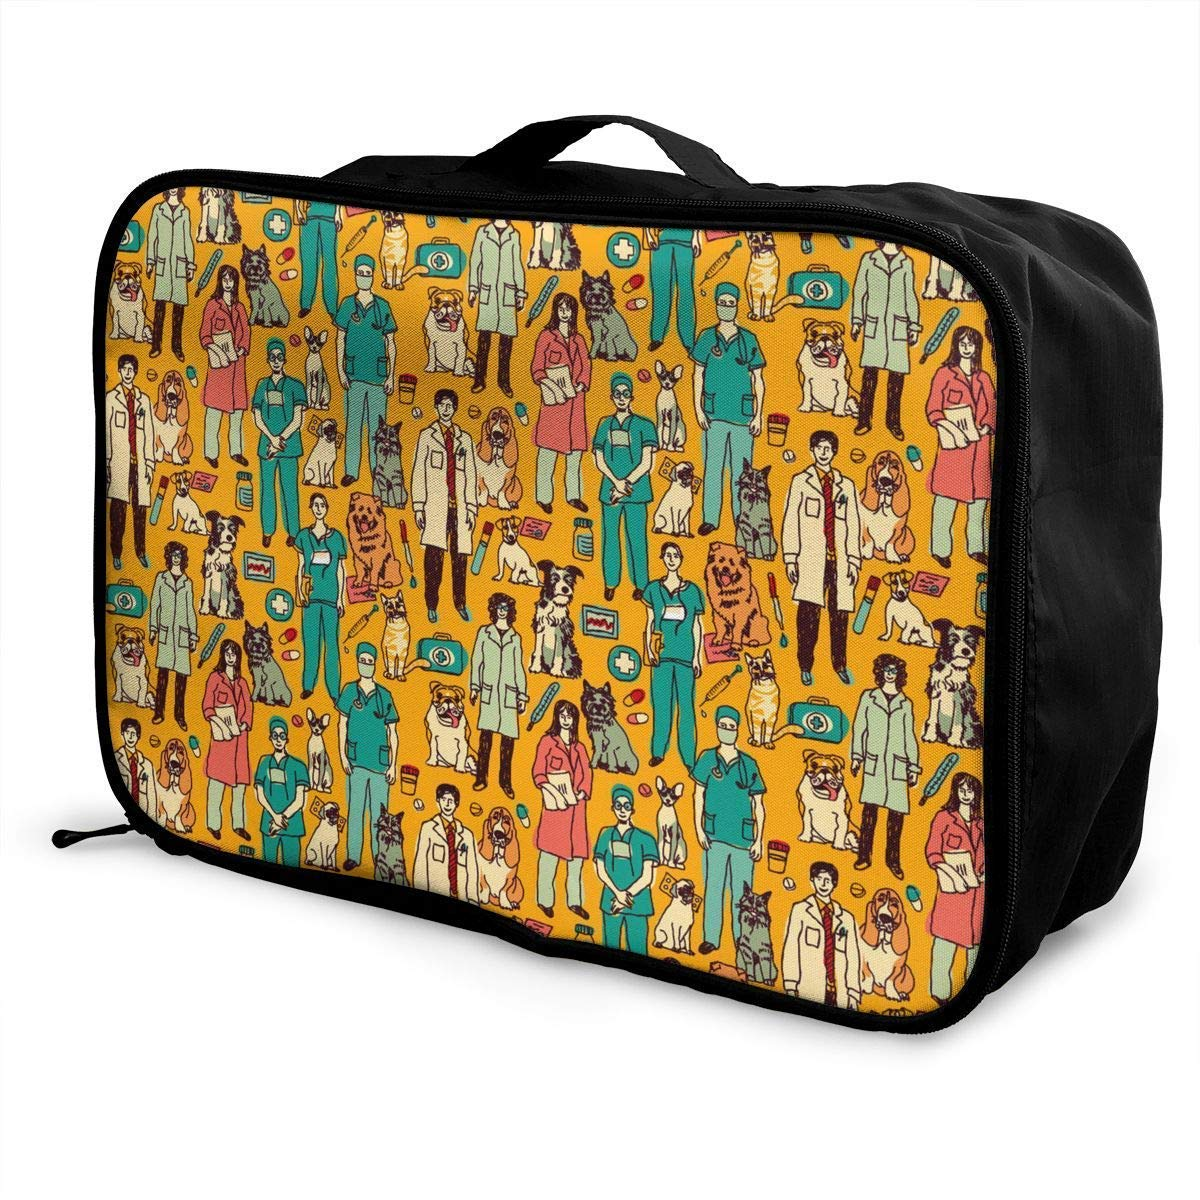 JTRVW Luggage Bags for Travel Portable Luggage Duffel Bag Veterinary People and Pets Pattern Travel Bags Carry-on in Trolley Handle